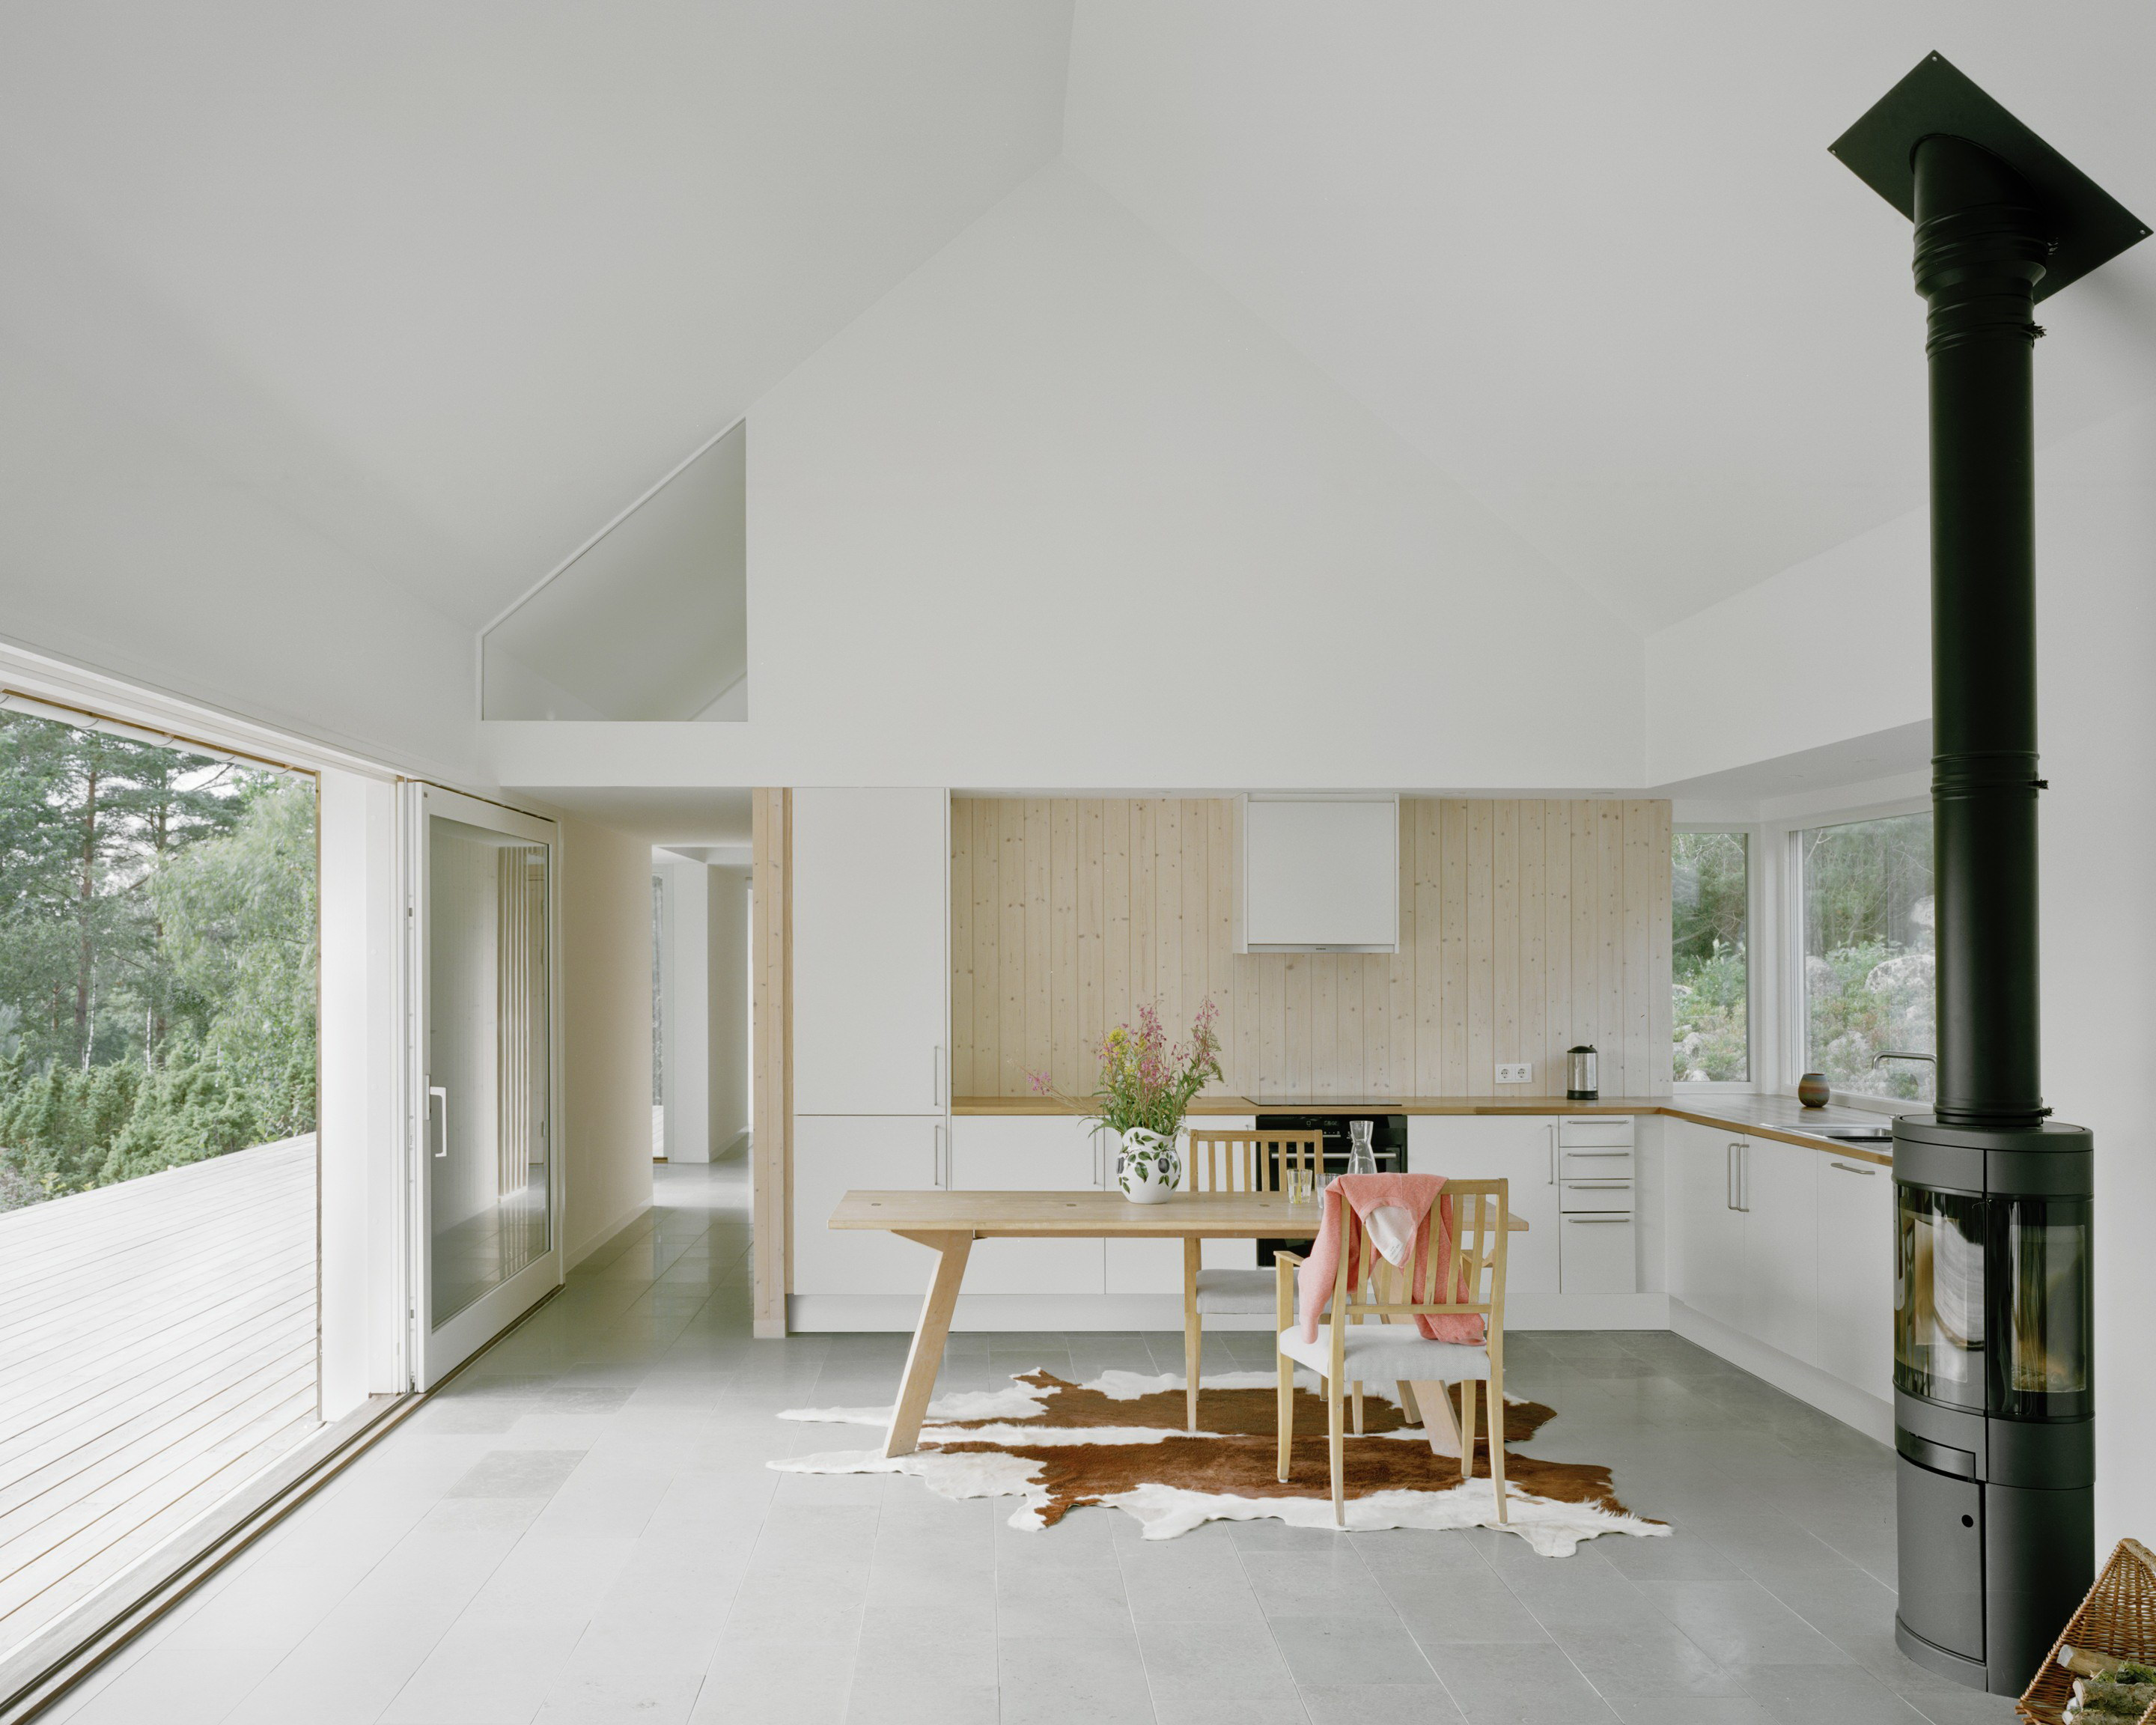 Summer House M in Sweden by M.B.A.